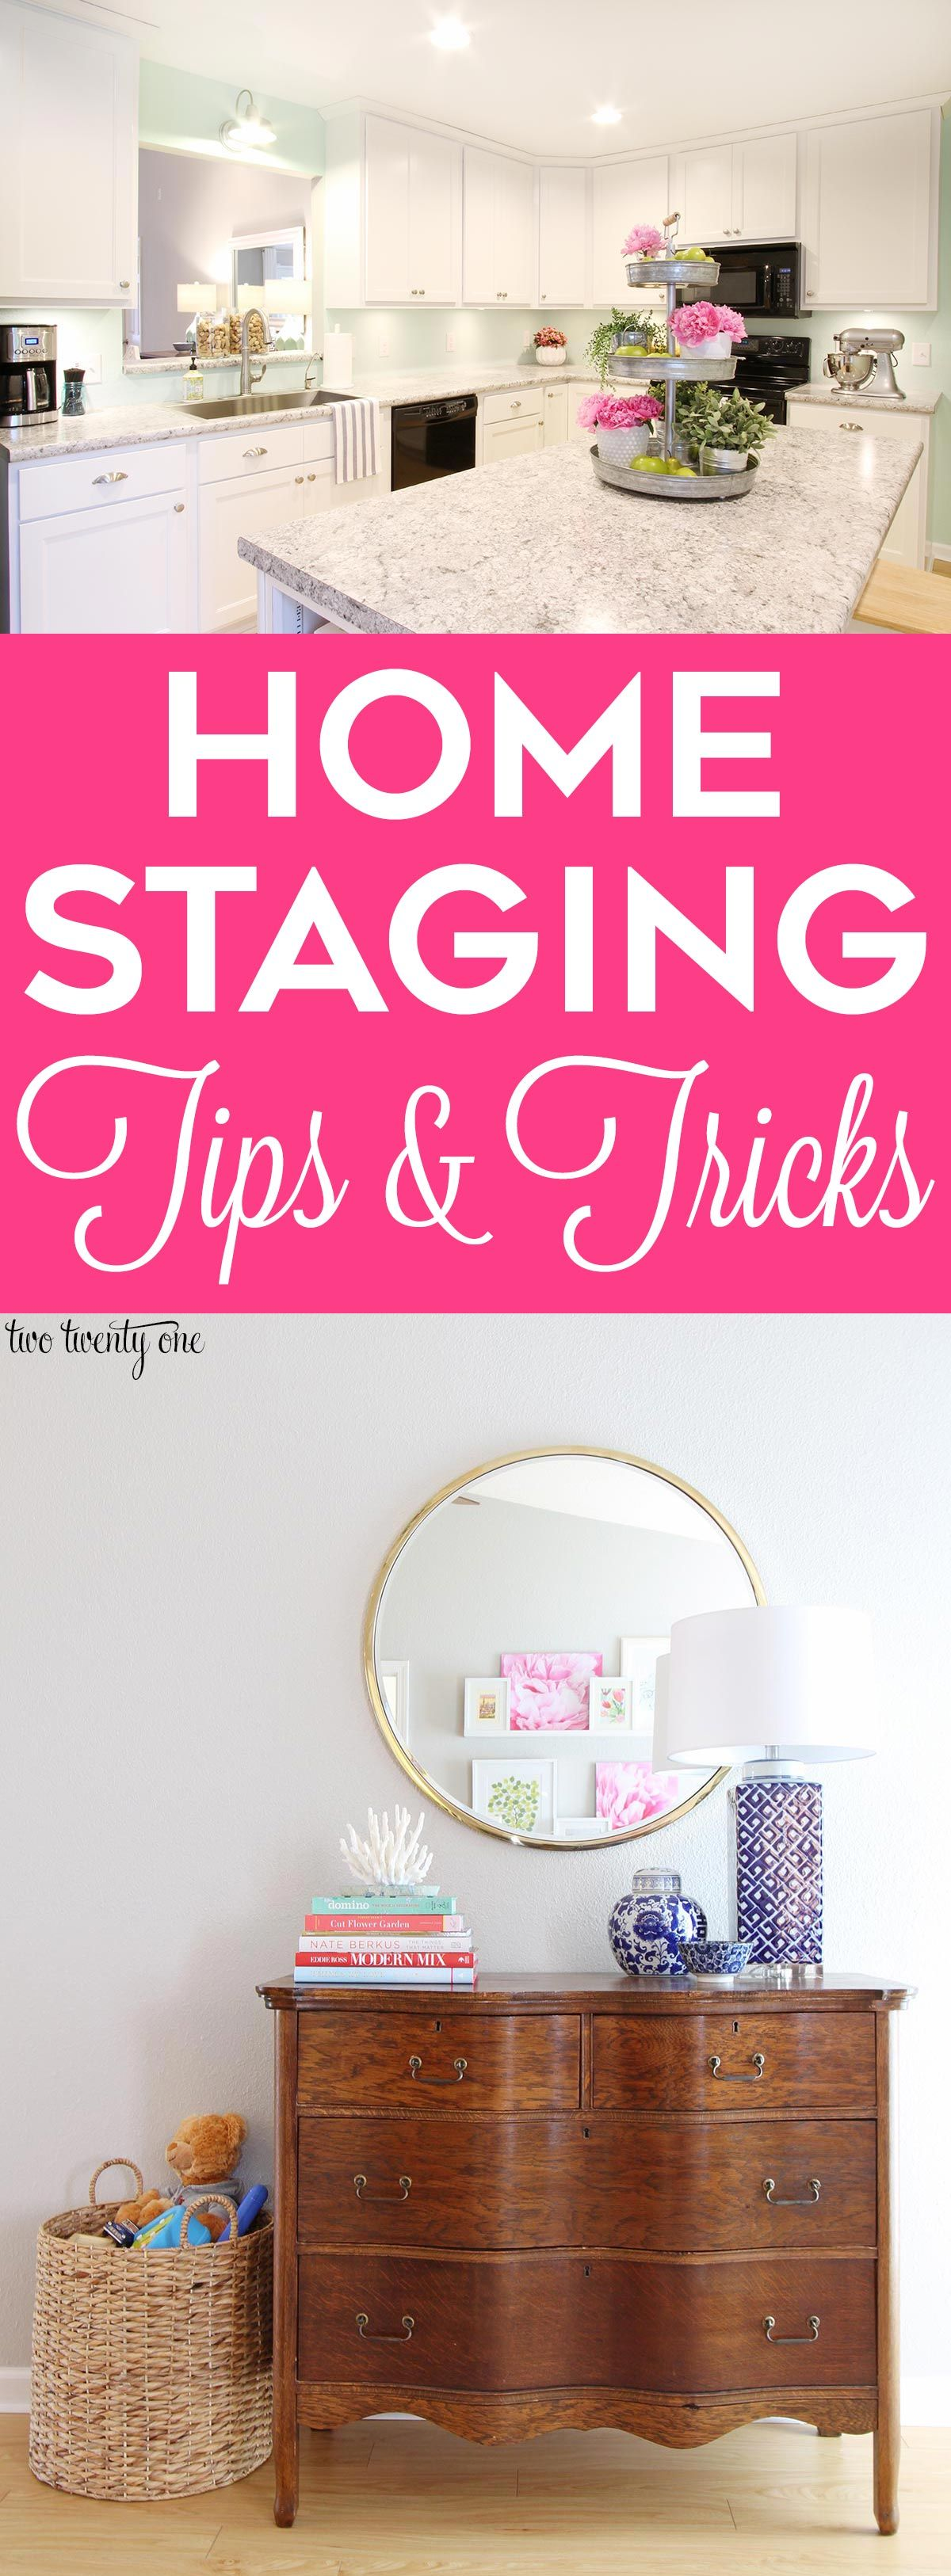 Home Staging Tips | Küche